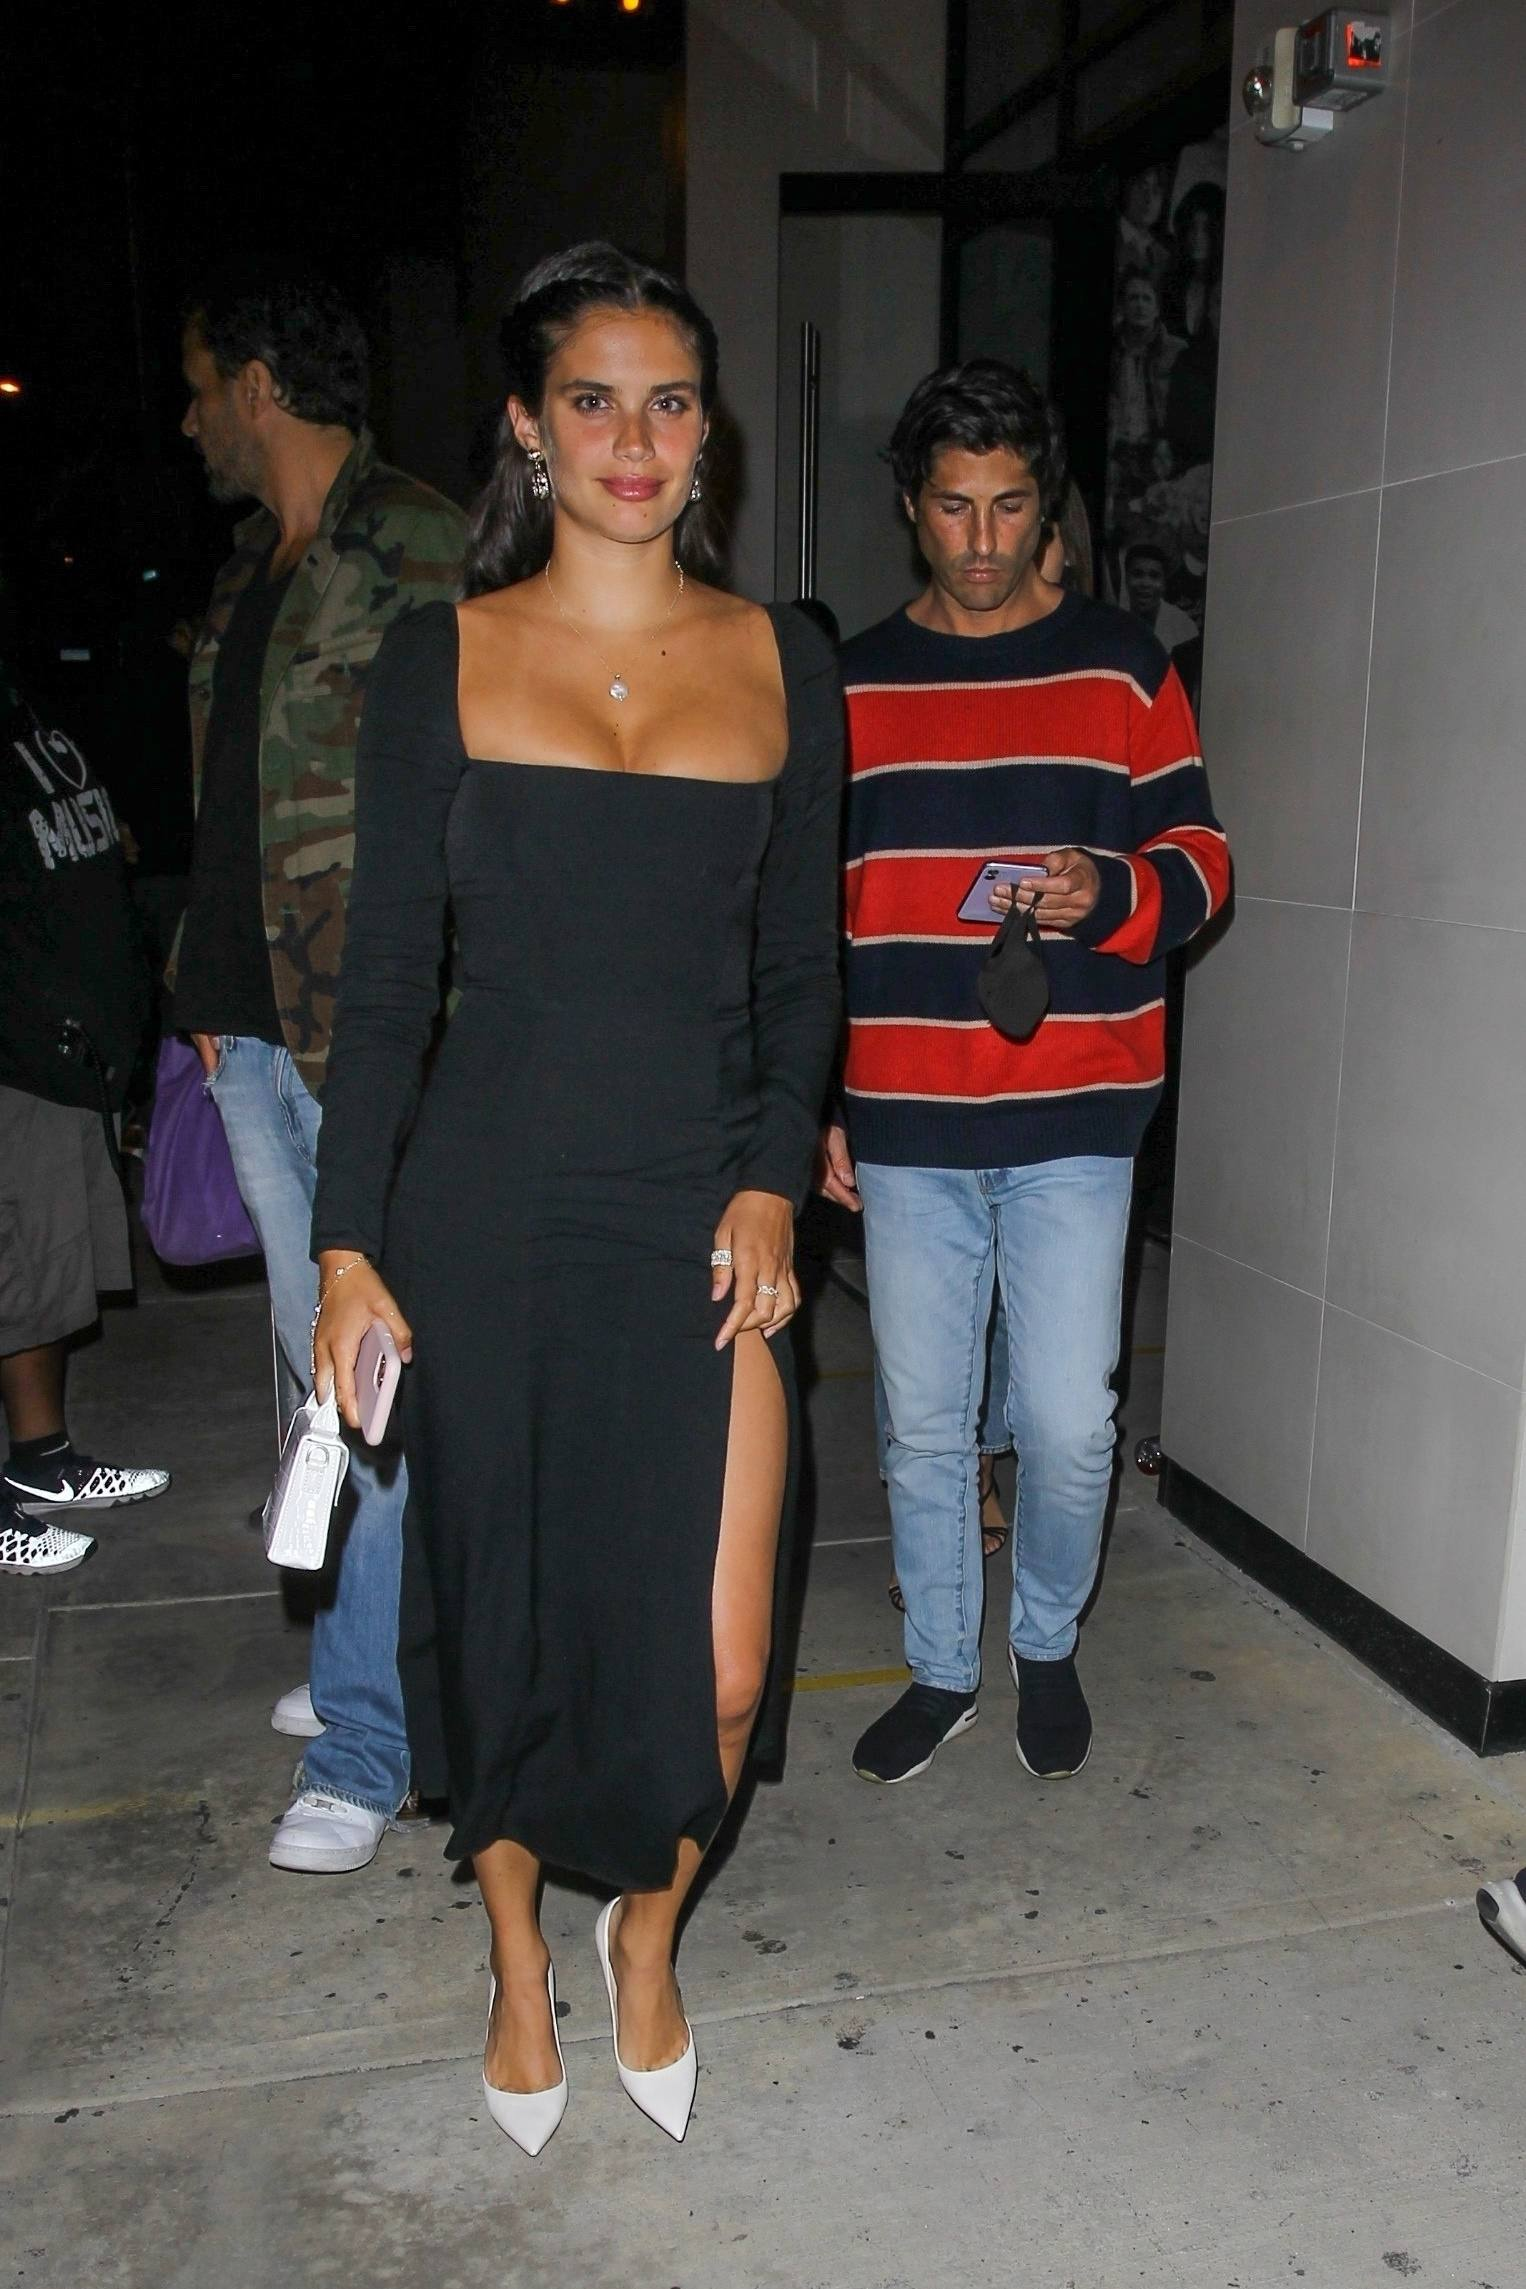 Sara Sampaio – Beautiful In Sexy Black Dress At Catch Restaurant In West Hollywood 0006